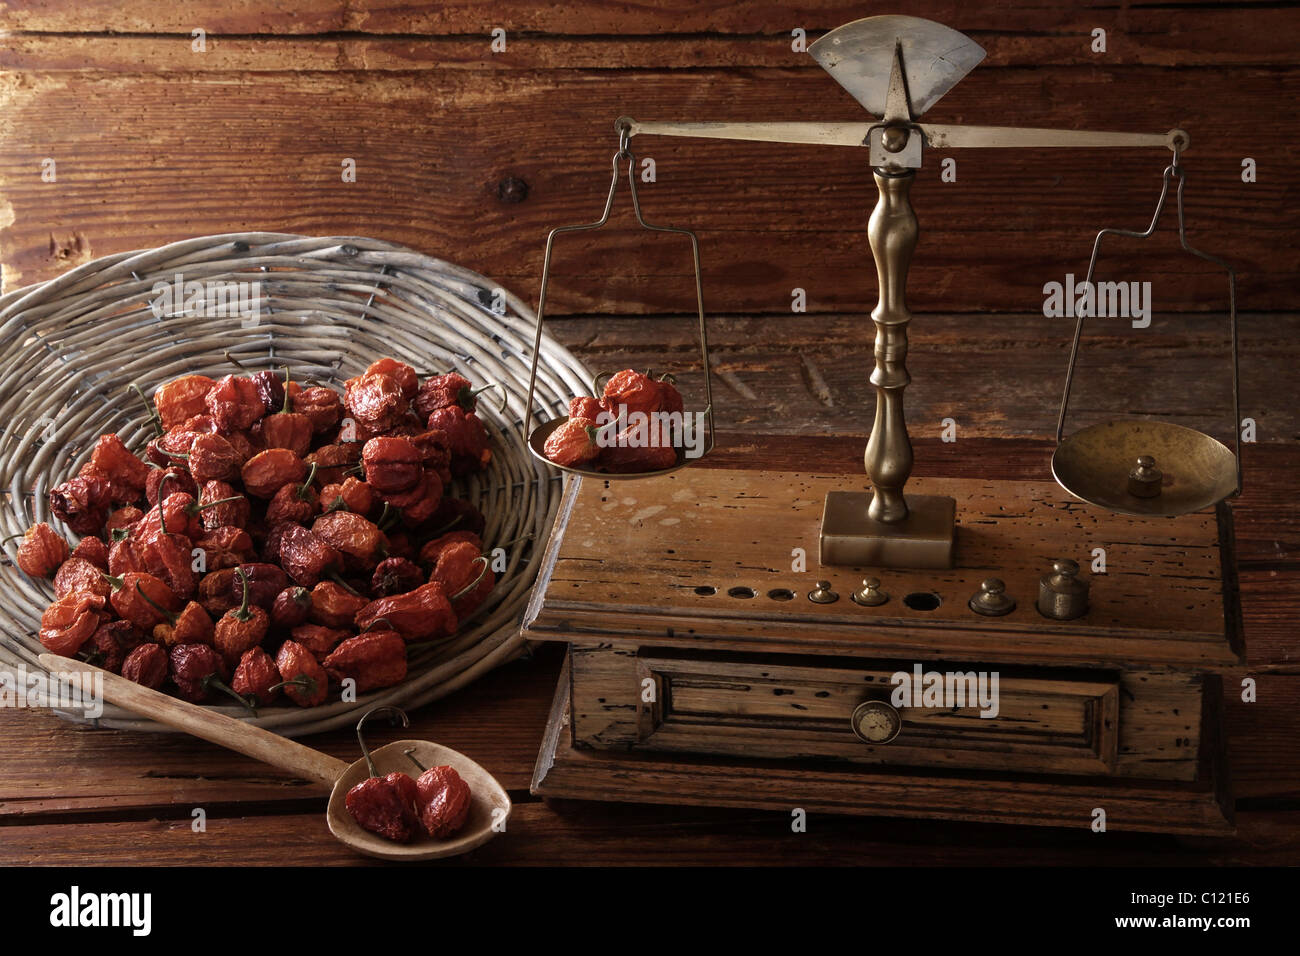 Antique scales weighing dried mini Peppers (Capsicum) on a wooden surface - Stock Image